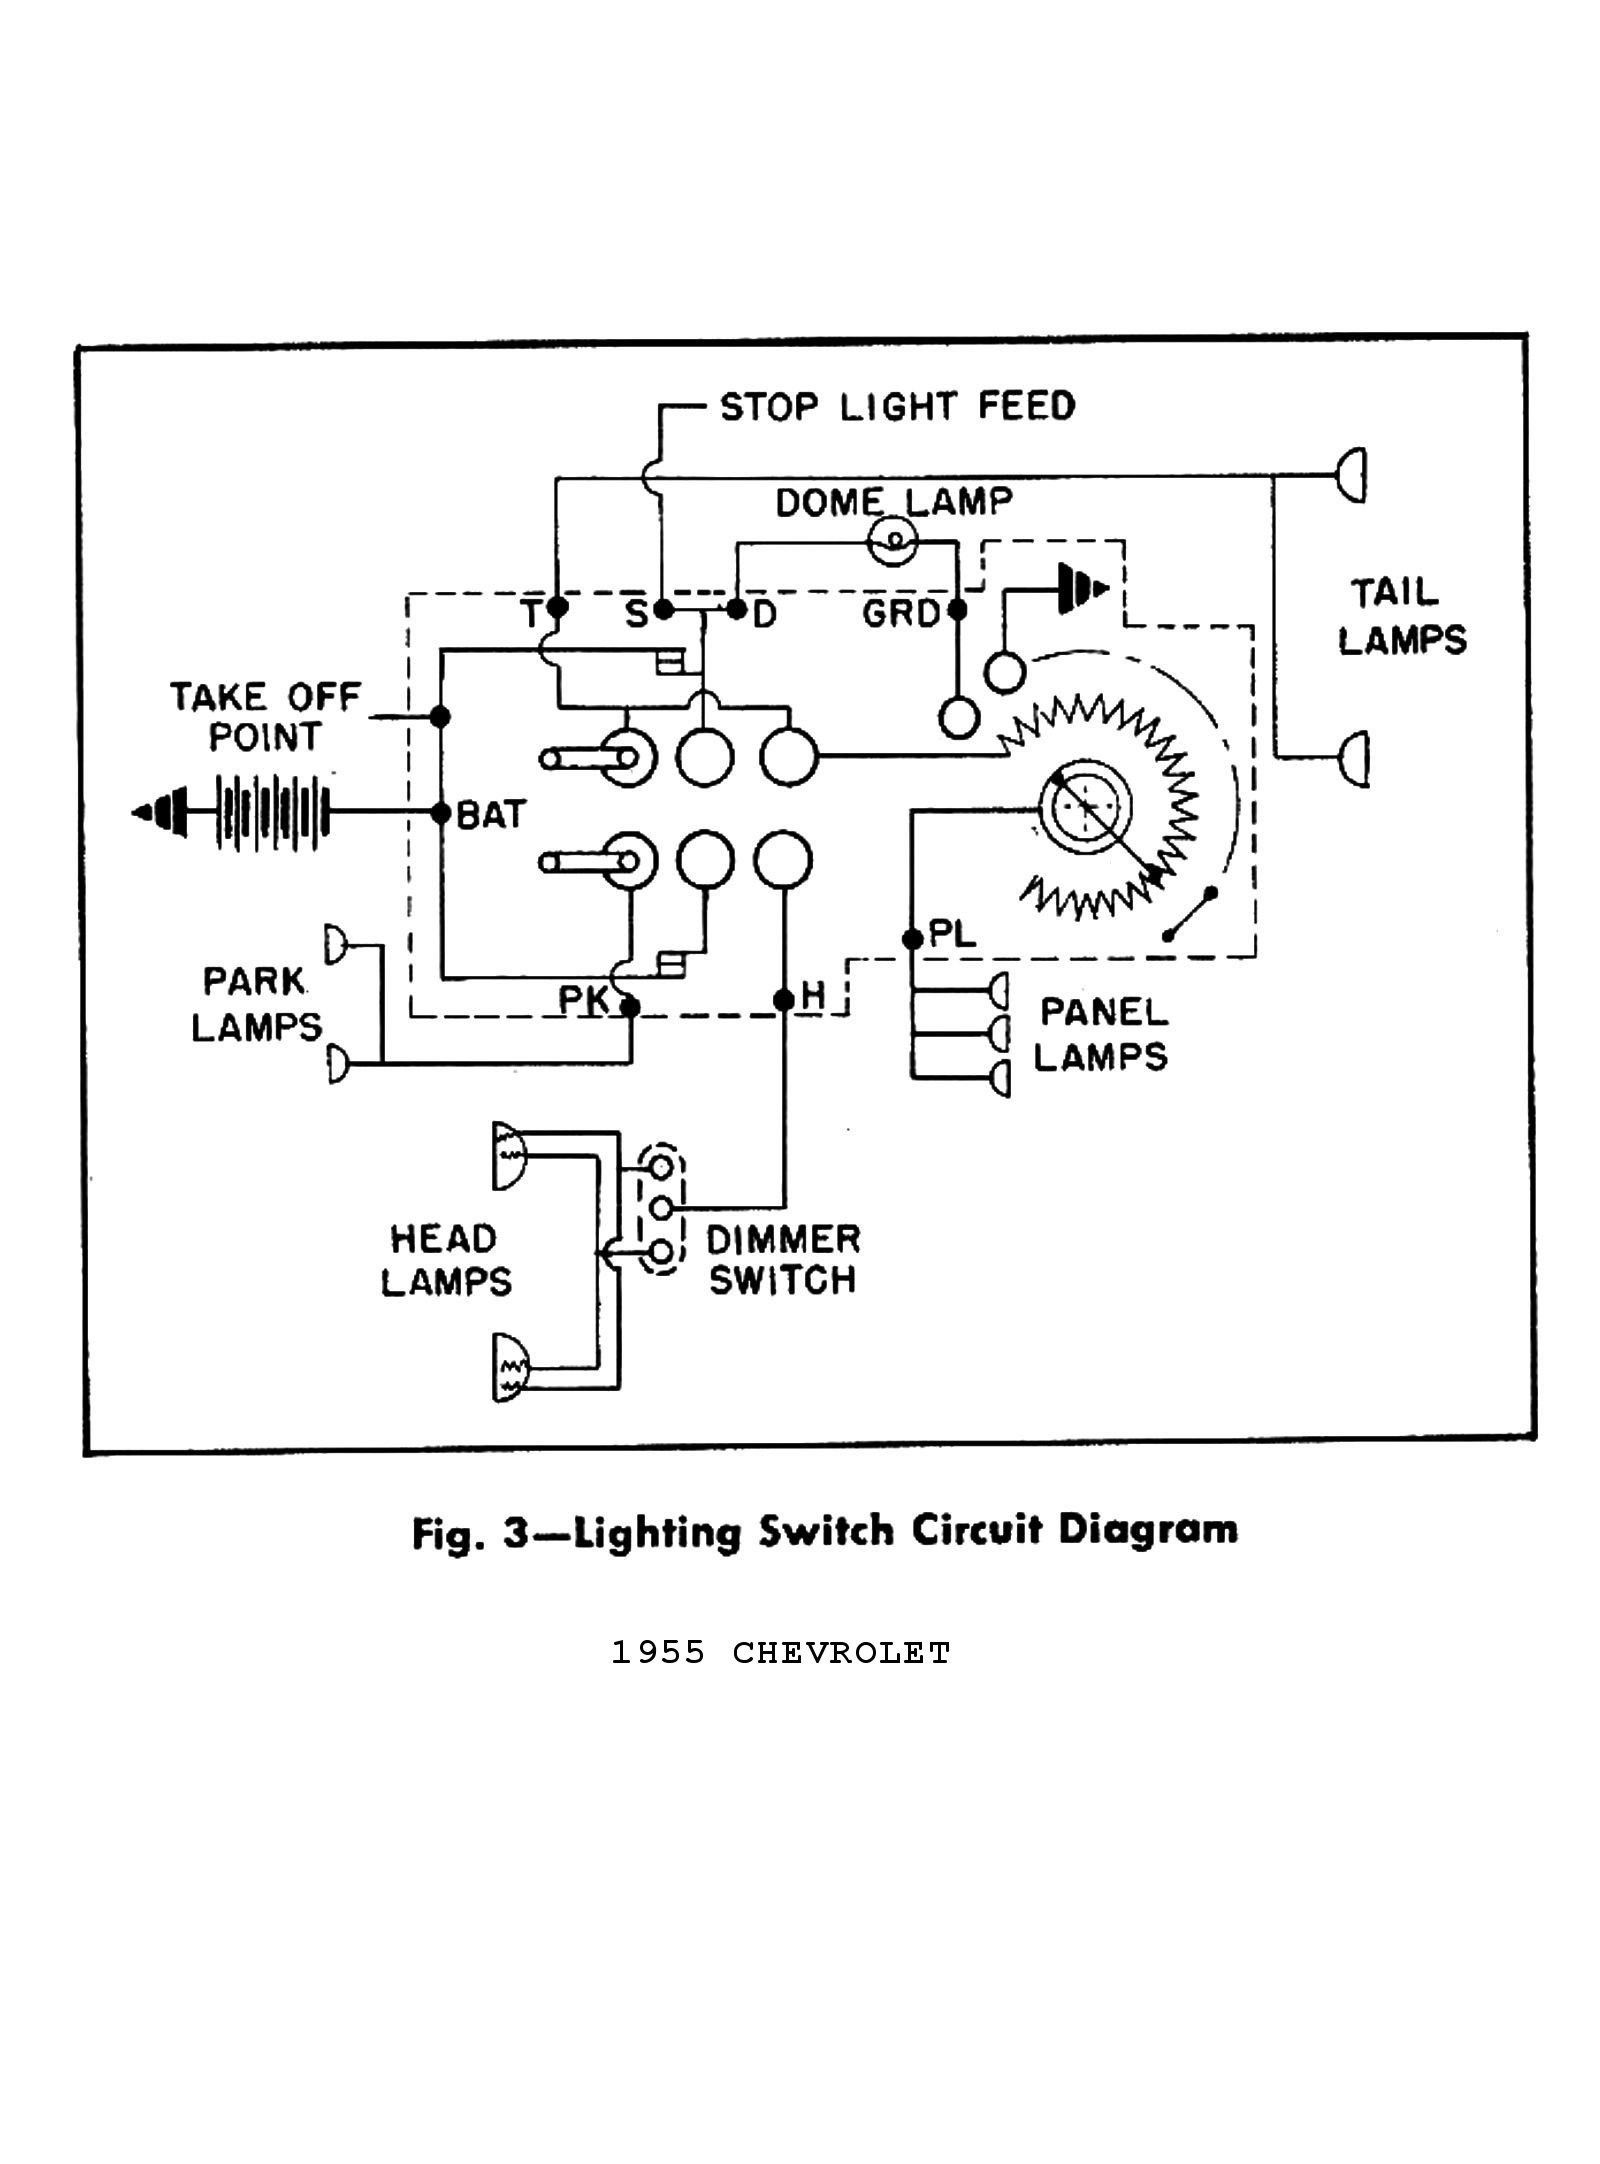 New Car Dimmer Switch Wiring Diagram #diagram #diagramtemplate  #diagramsample | Sistema electrico, Electrica, Motor fordPinterest